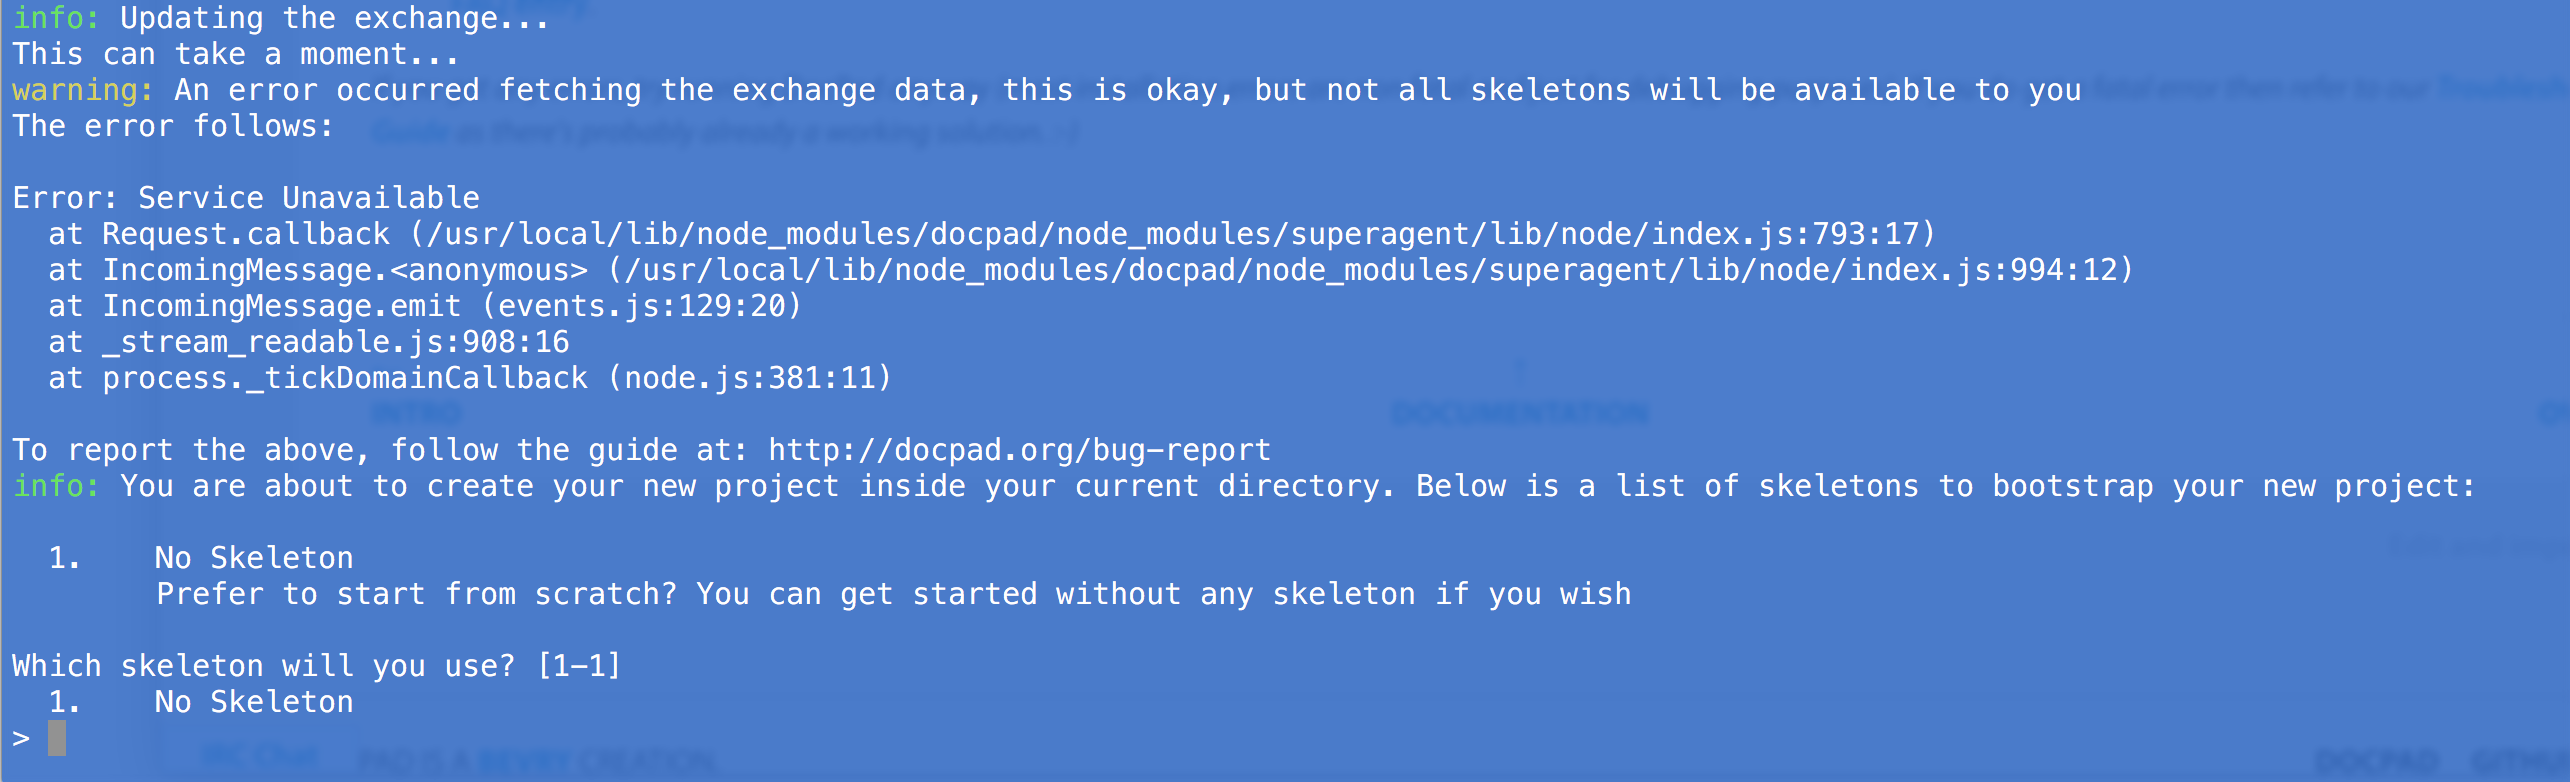 A screenshot of my terminal that shows an error service unavailable when attempting to reach the skeleton list